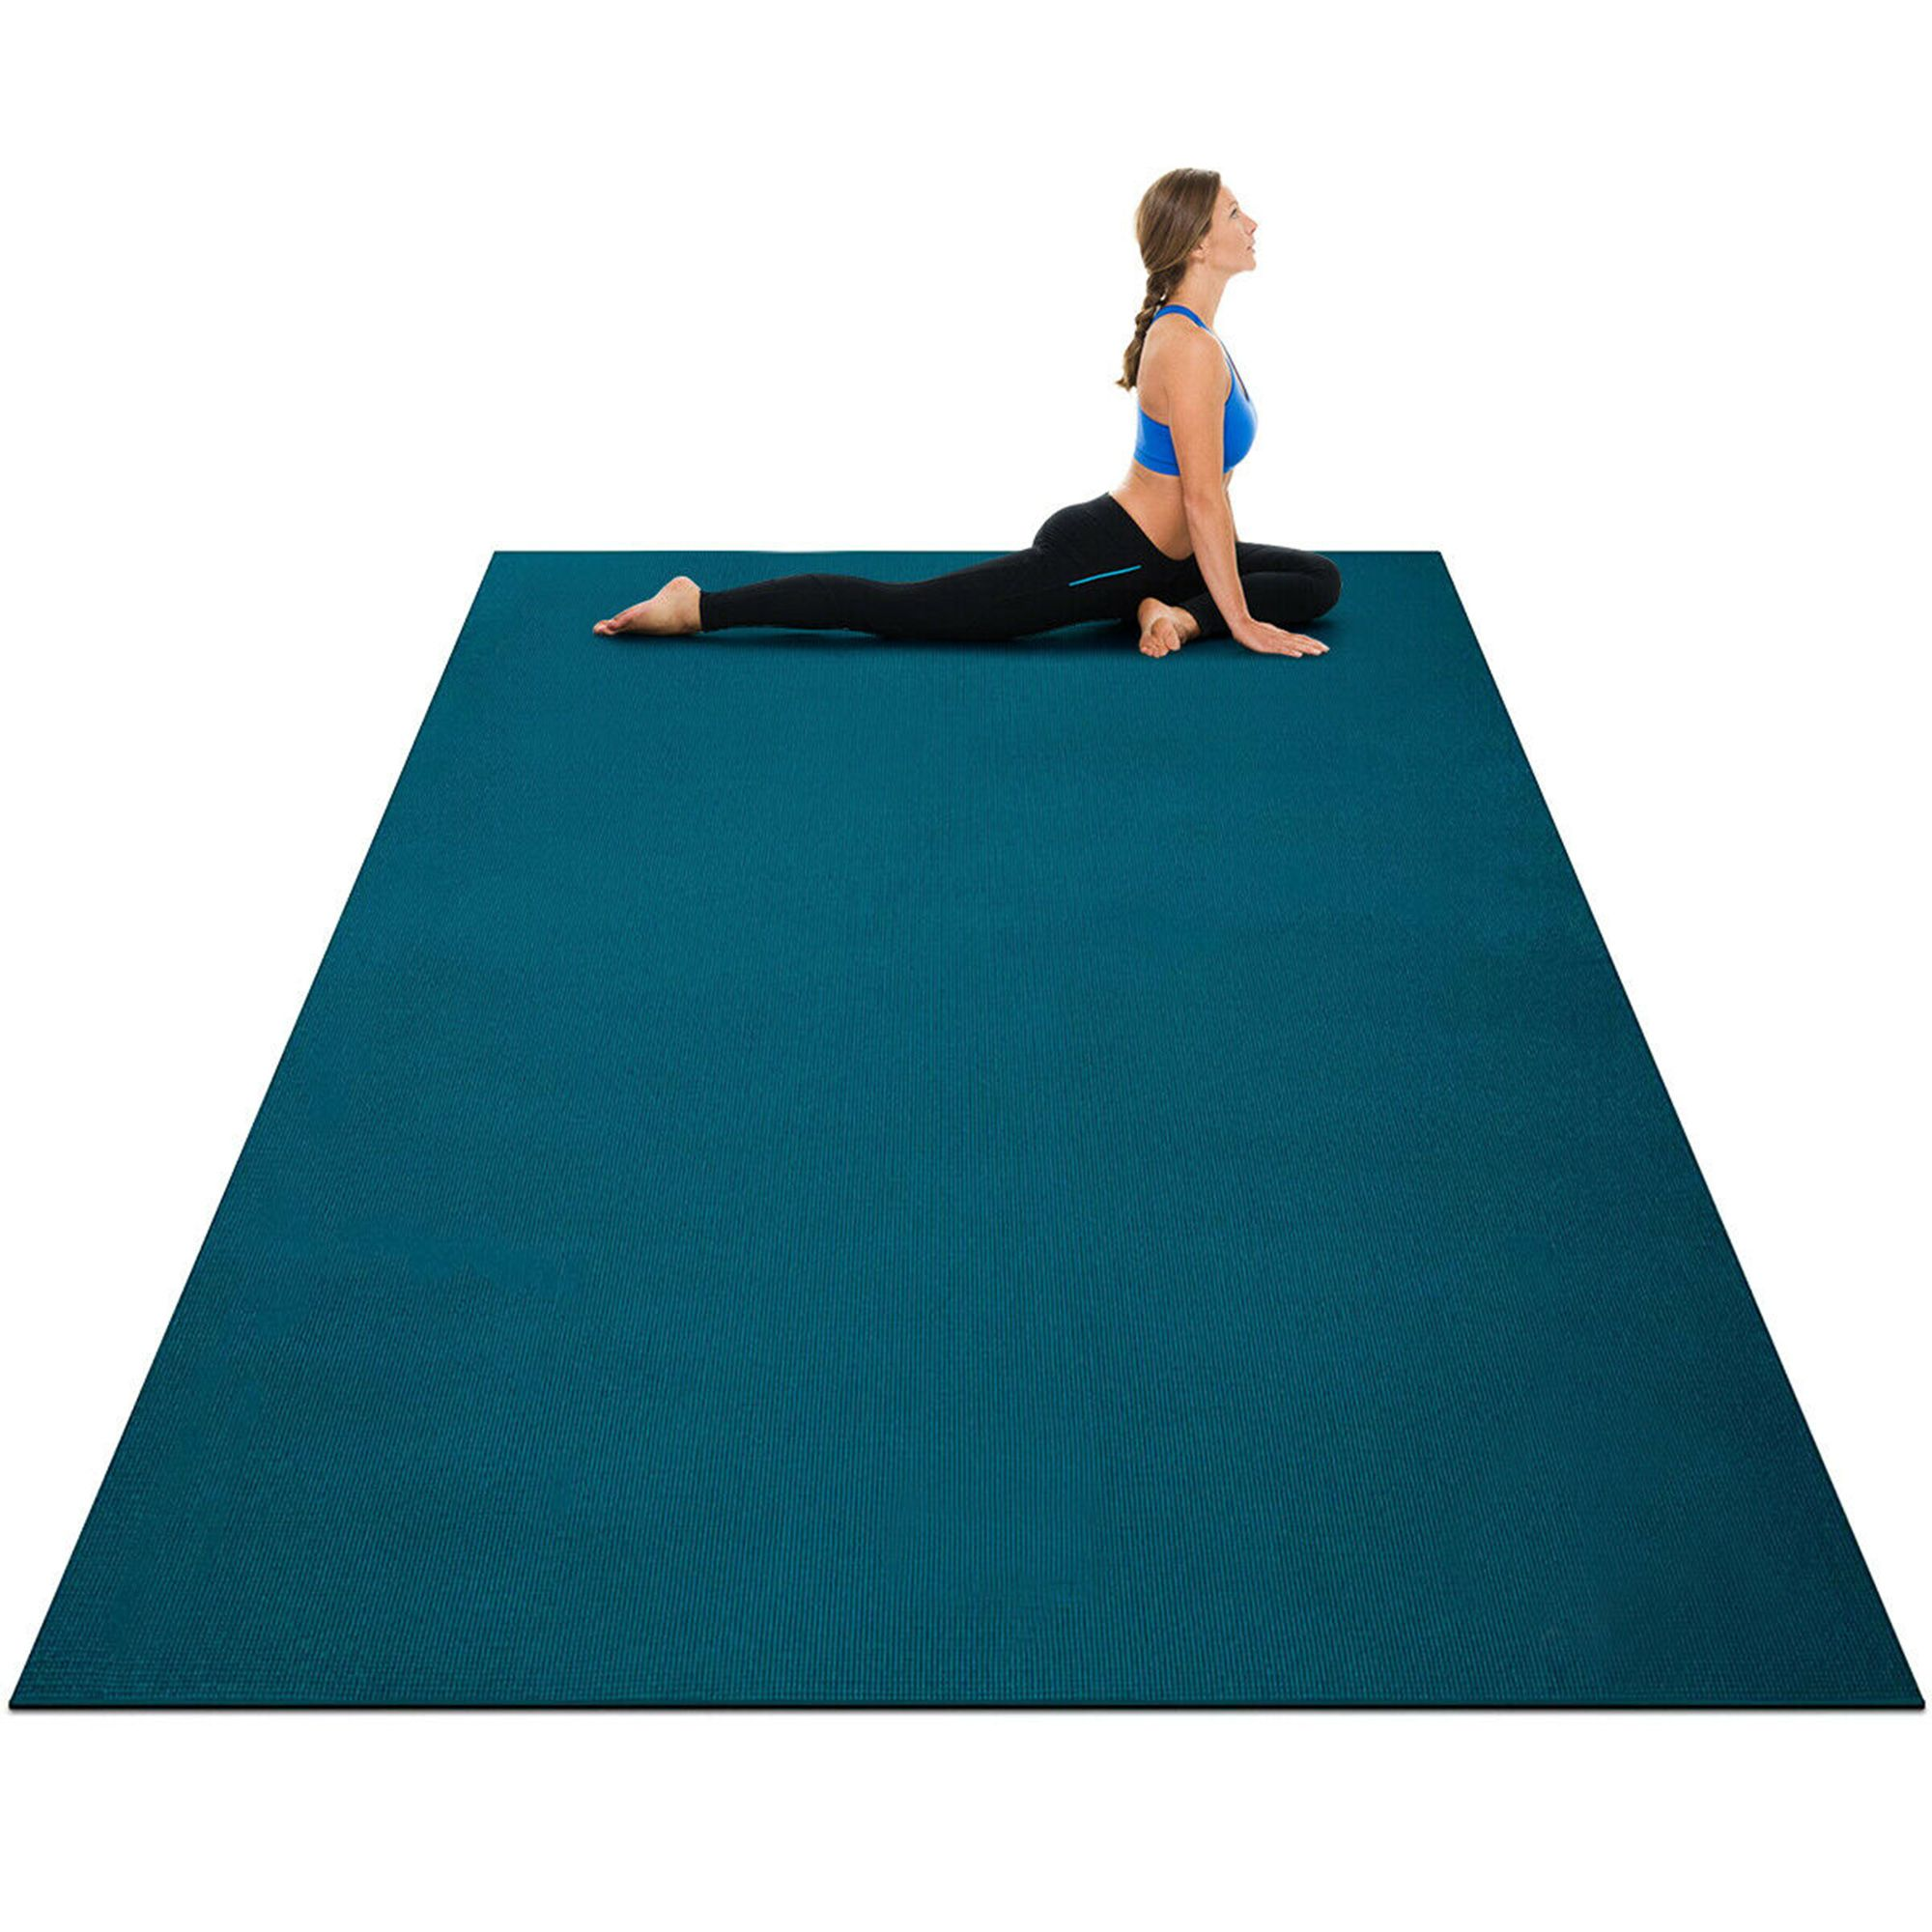 Free 2 Day Shipping Buy Gymax Large Yoga Mat 7 X 5 X 8 Mm Thick Workout Mats For Home Gym Flooring At Wa In 2020 Large Yoga Mat Home Gym Flooring